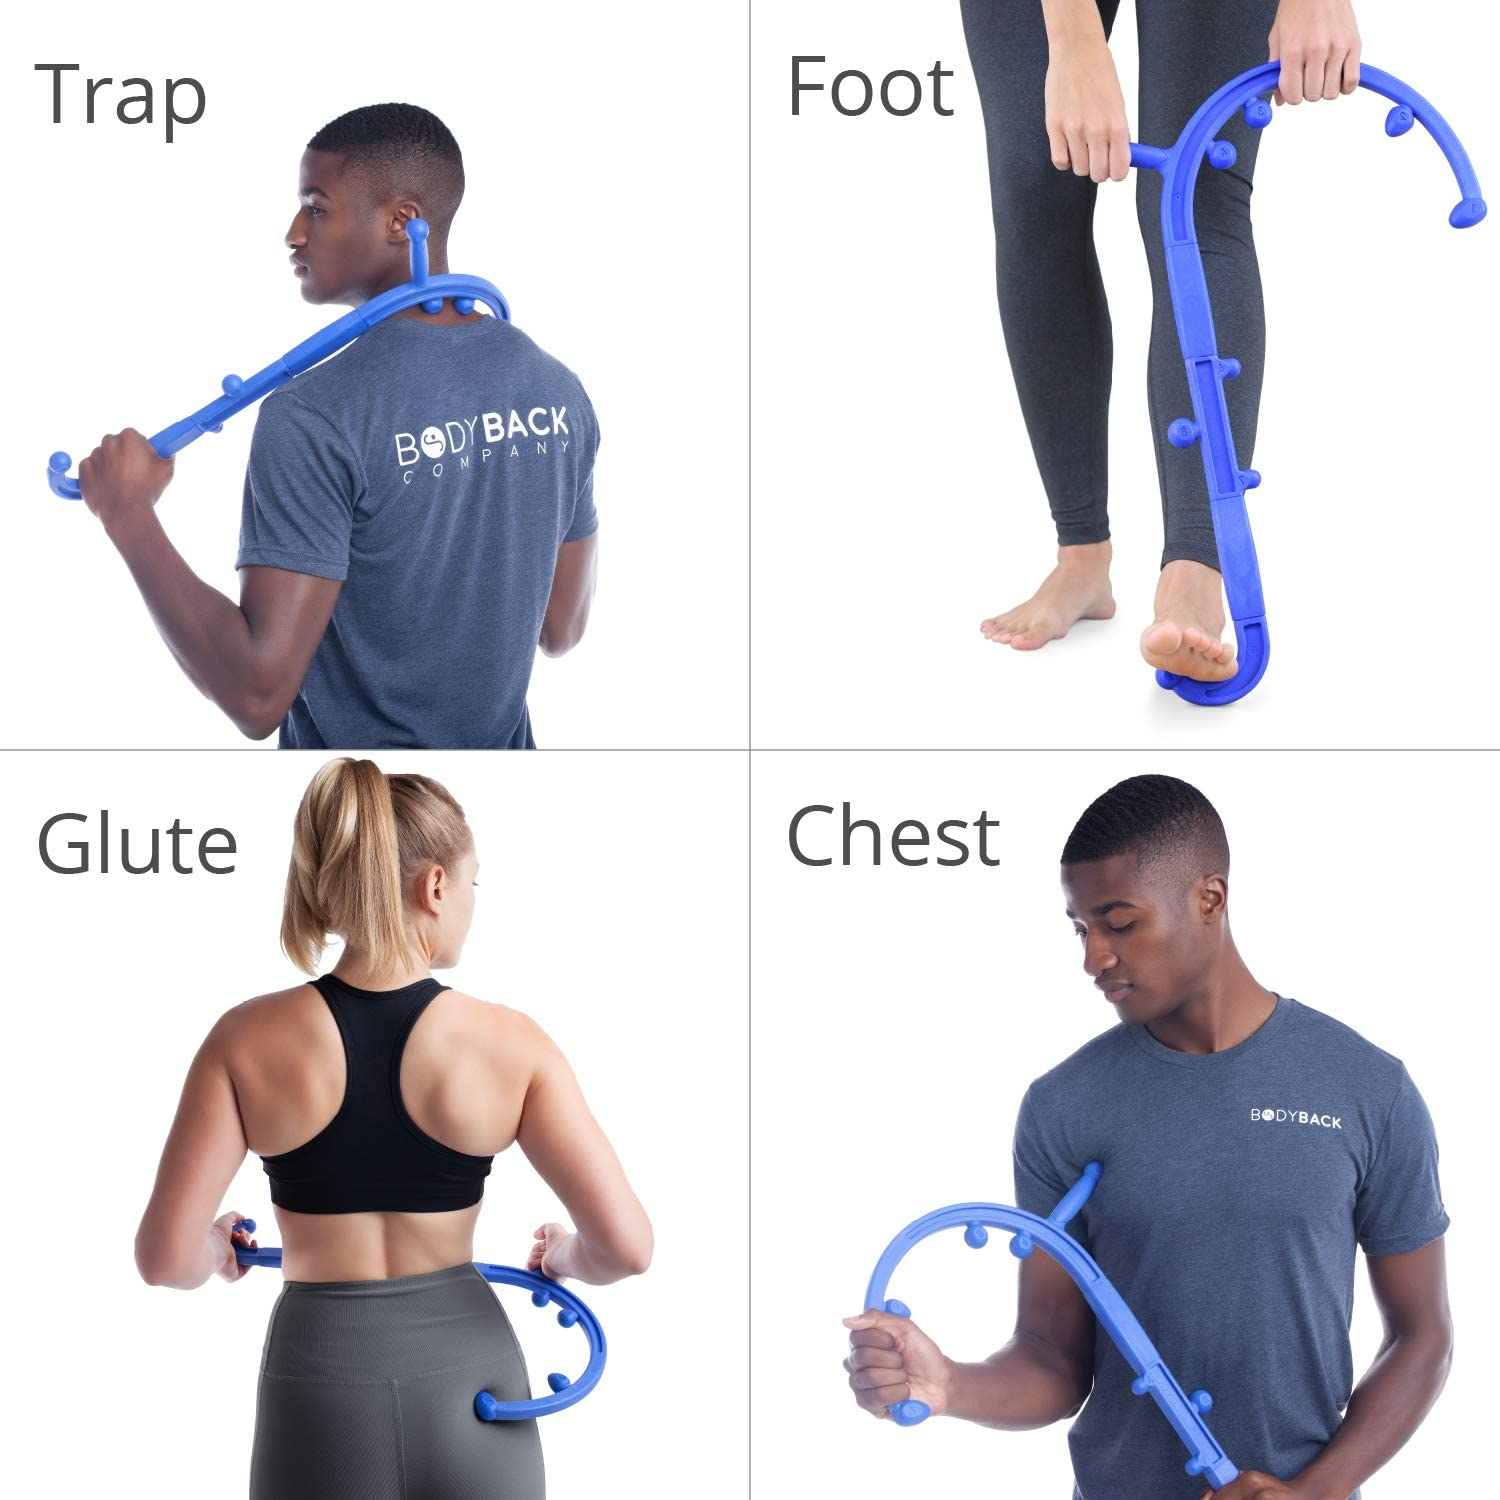 Body Back Buddy Cane Portable Self Massage Stick with Usage Poster - Back, Neck & Shoulder Trigger Point Therapy Travel Massager by Body Back Company (Blue): Health & Personal Care